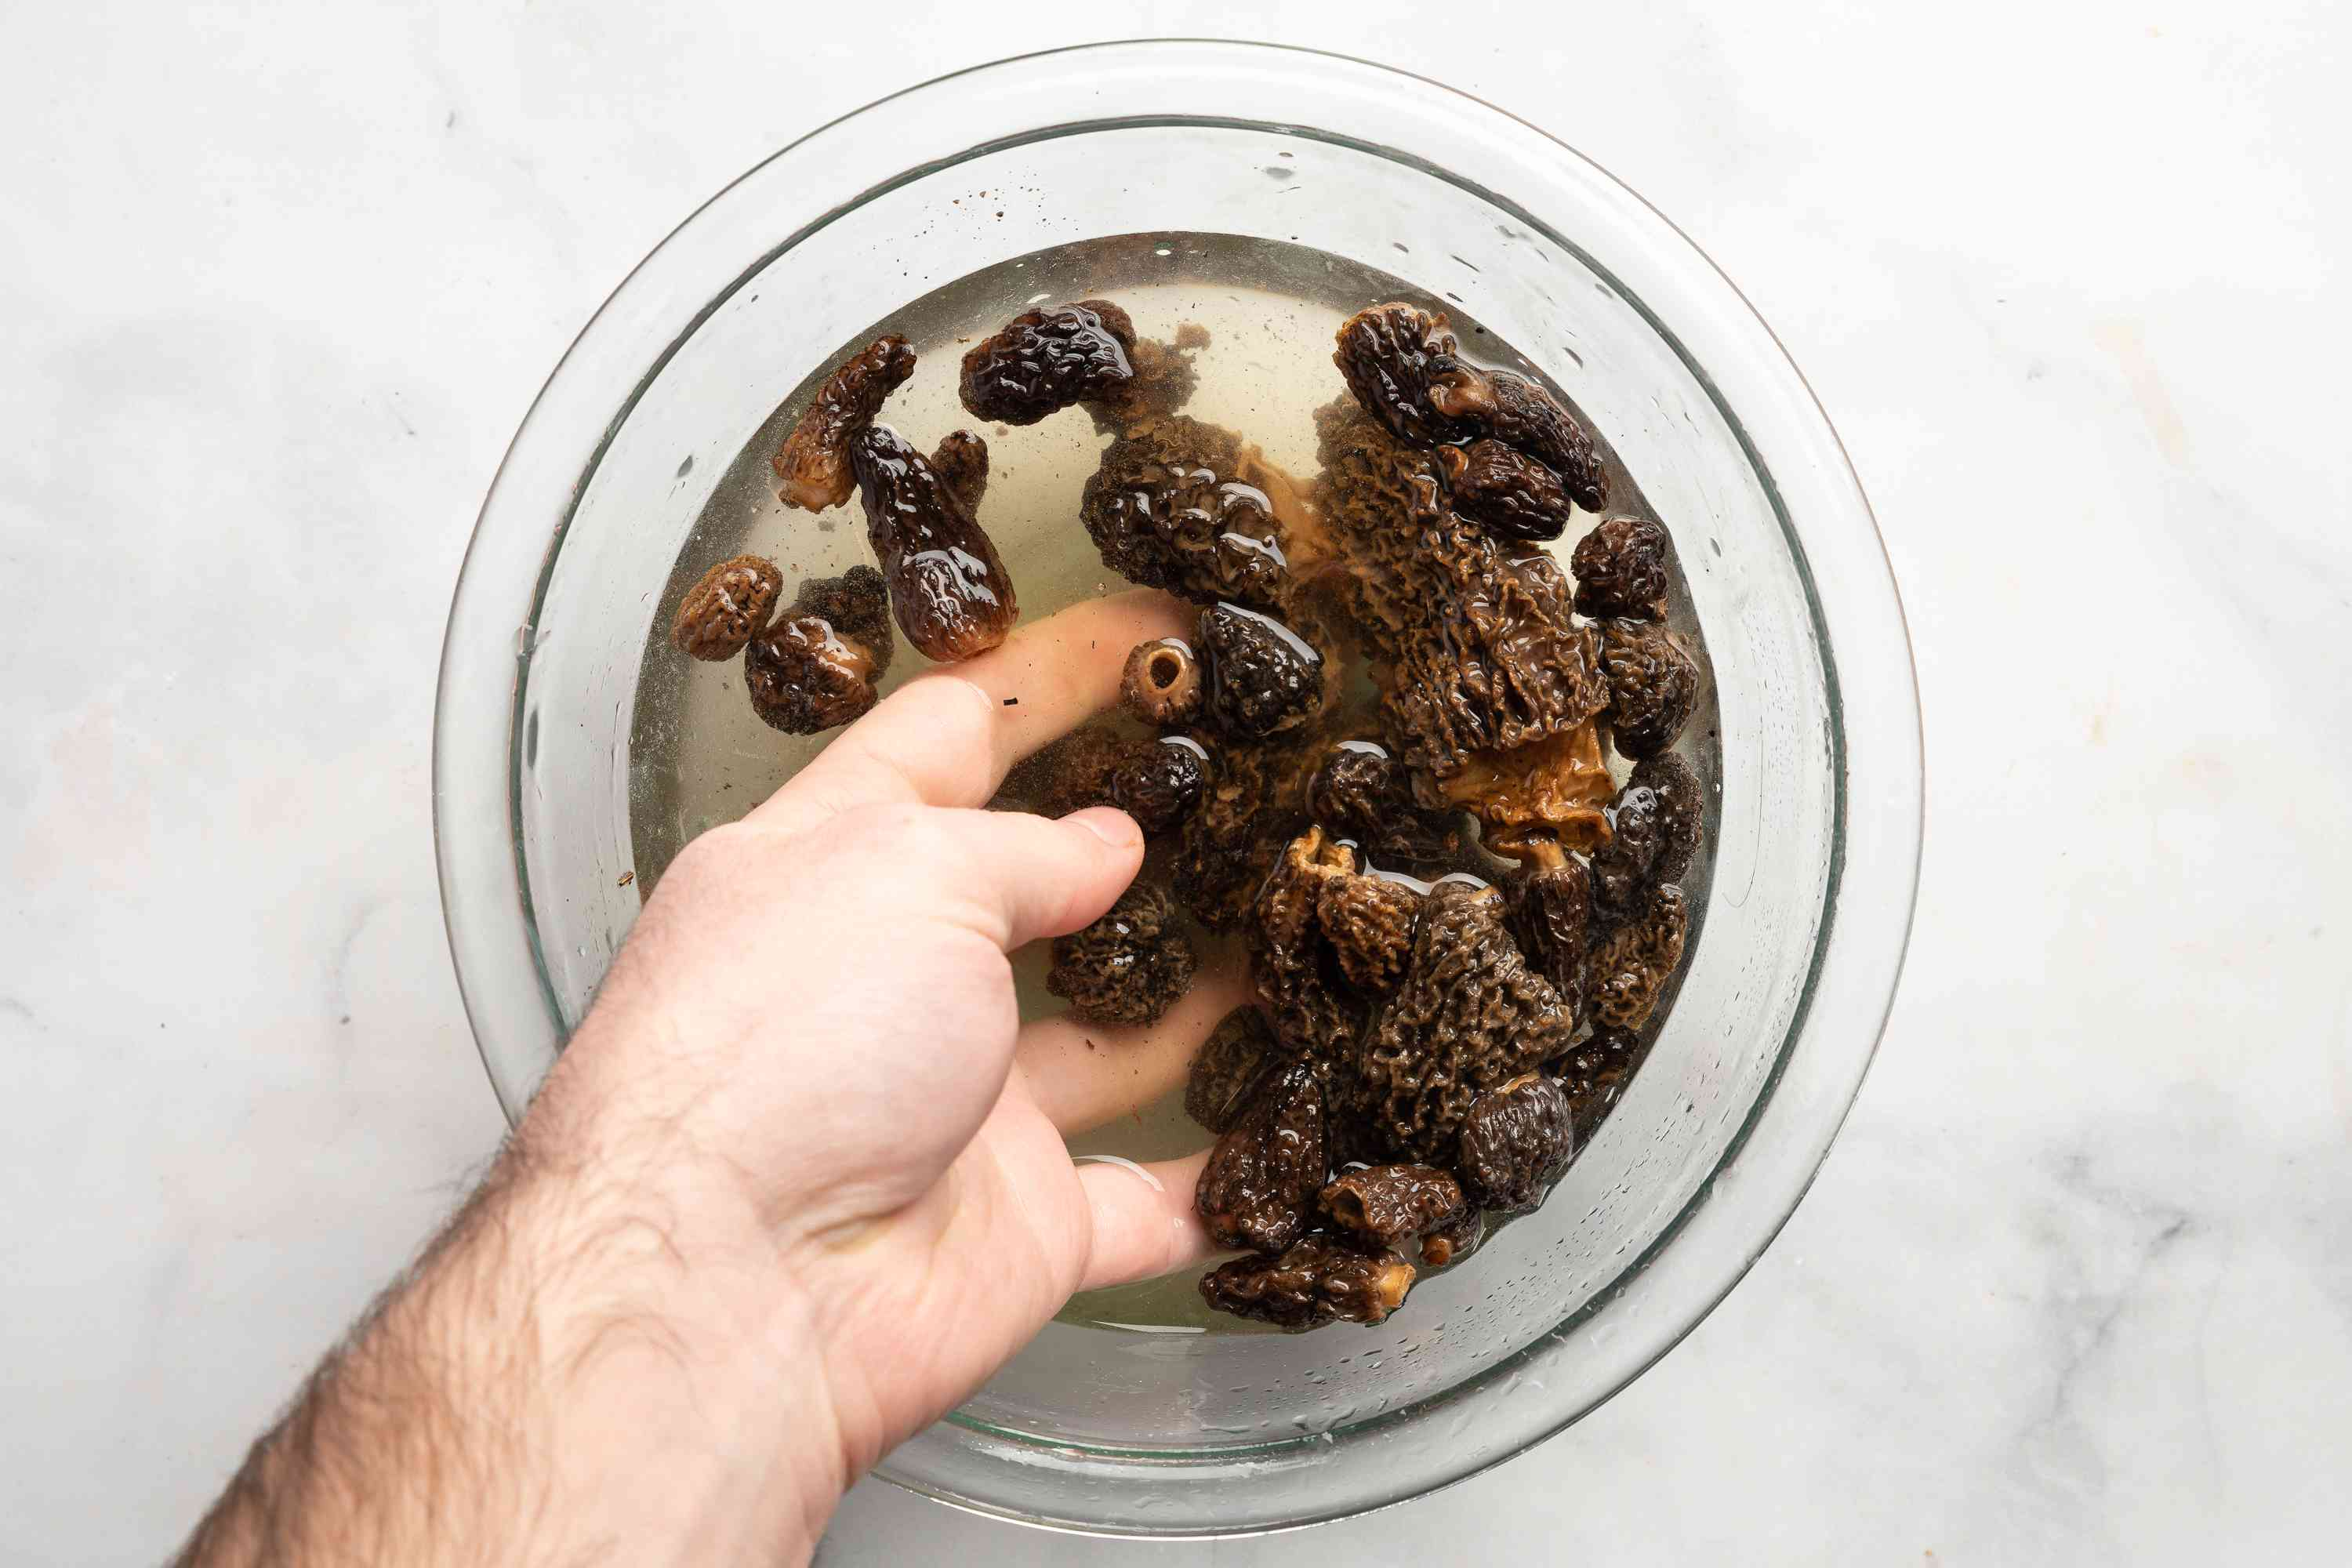 wash the morel mushrooms in a bowl of water